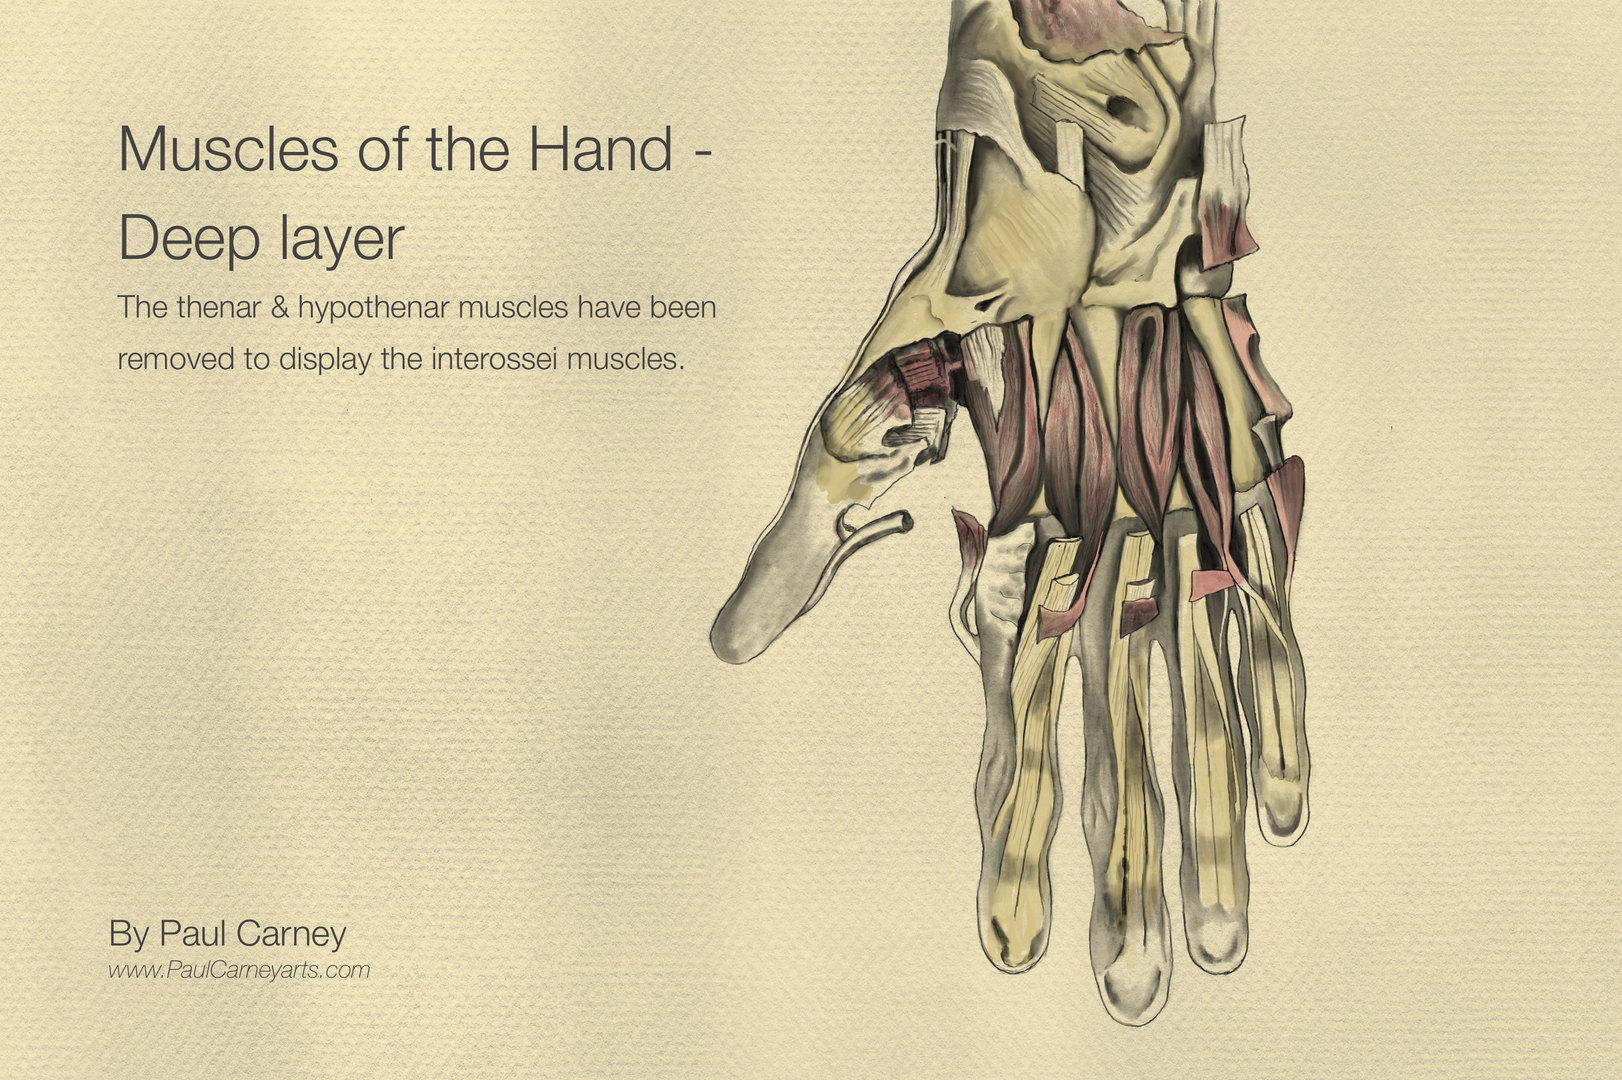 muscles of the hand deep layer